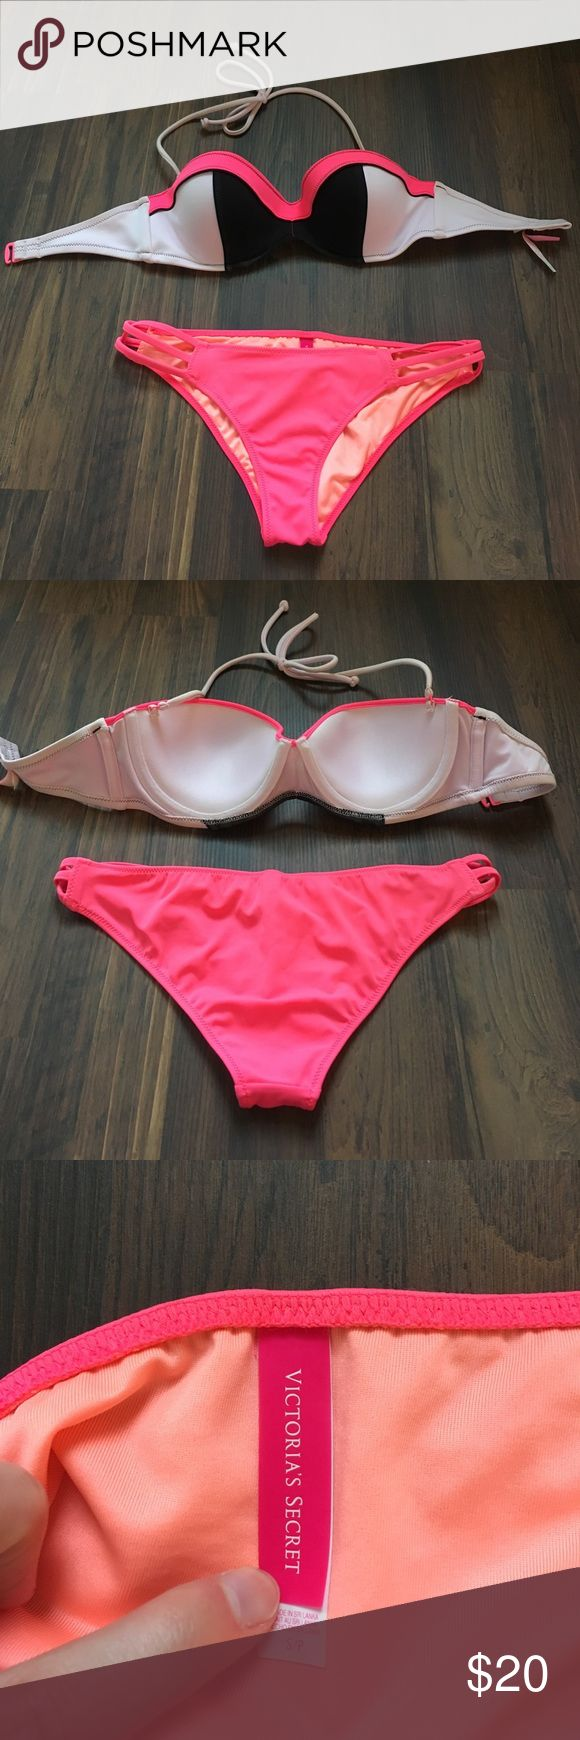 Victoria's Secret pink bikini set 32D/small Good condition, clean and only worn a few times. Hand washed. Great fit and coverage. Very minor discoloration from sunscreen on top. Victoria's Secret Swim Bikinis